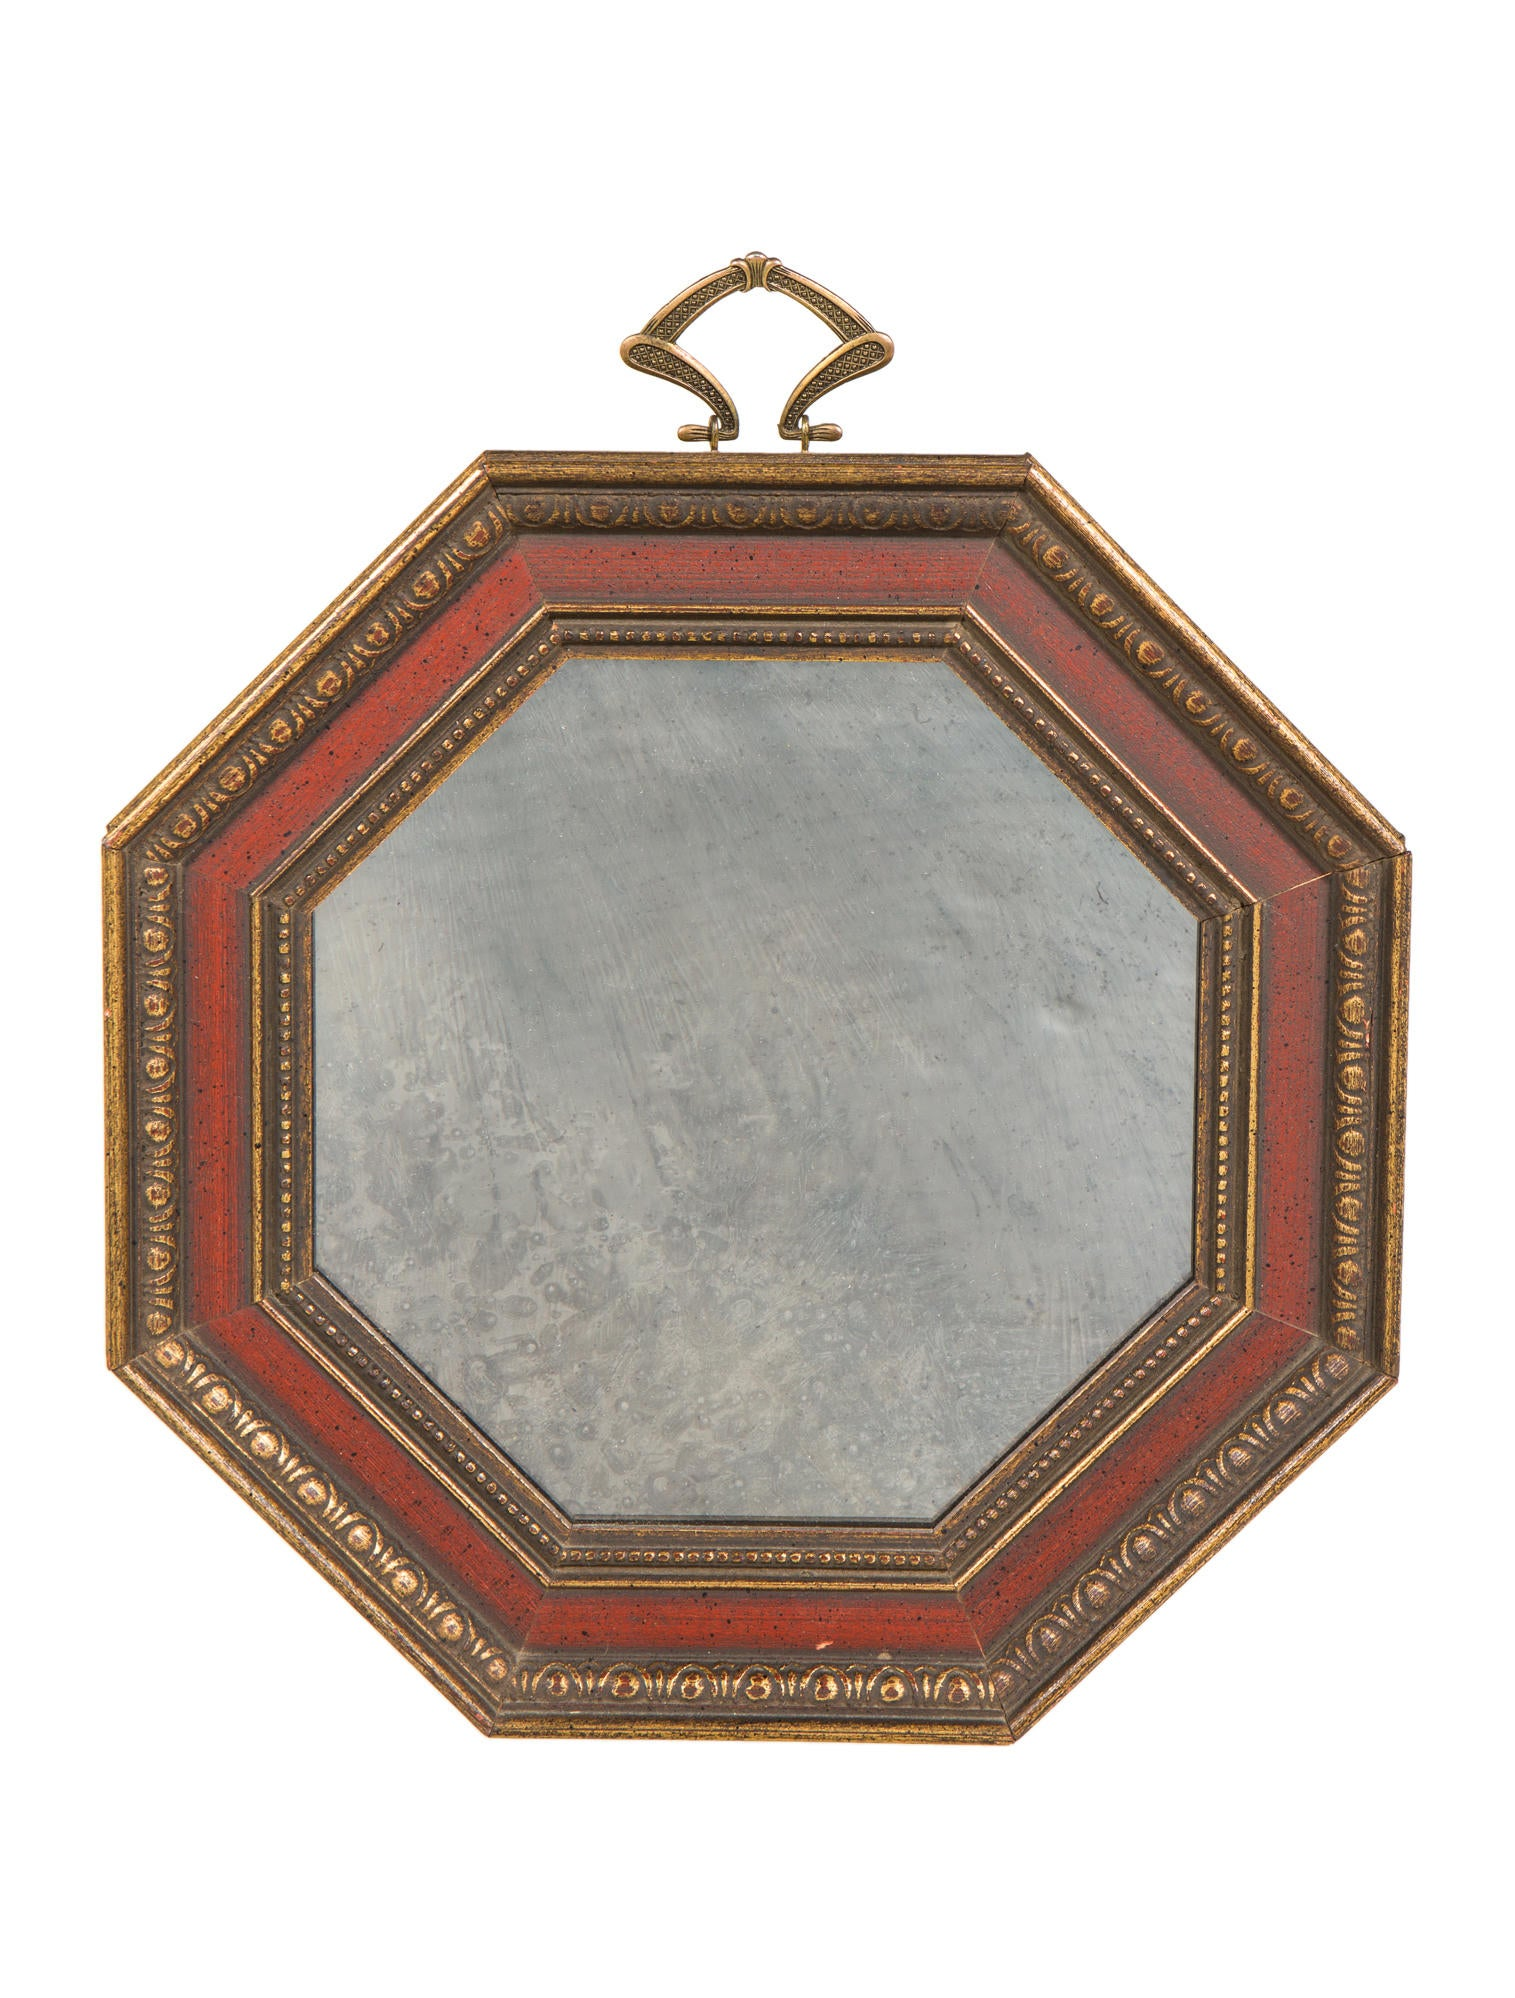 Antique decorative wall mirror decor and accessories for Decorative wall mirrors